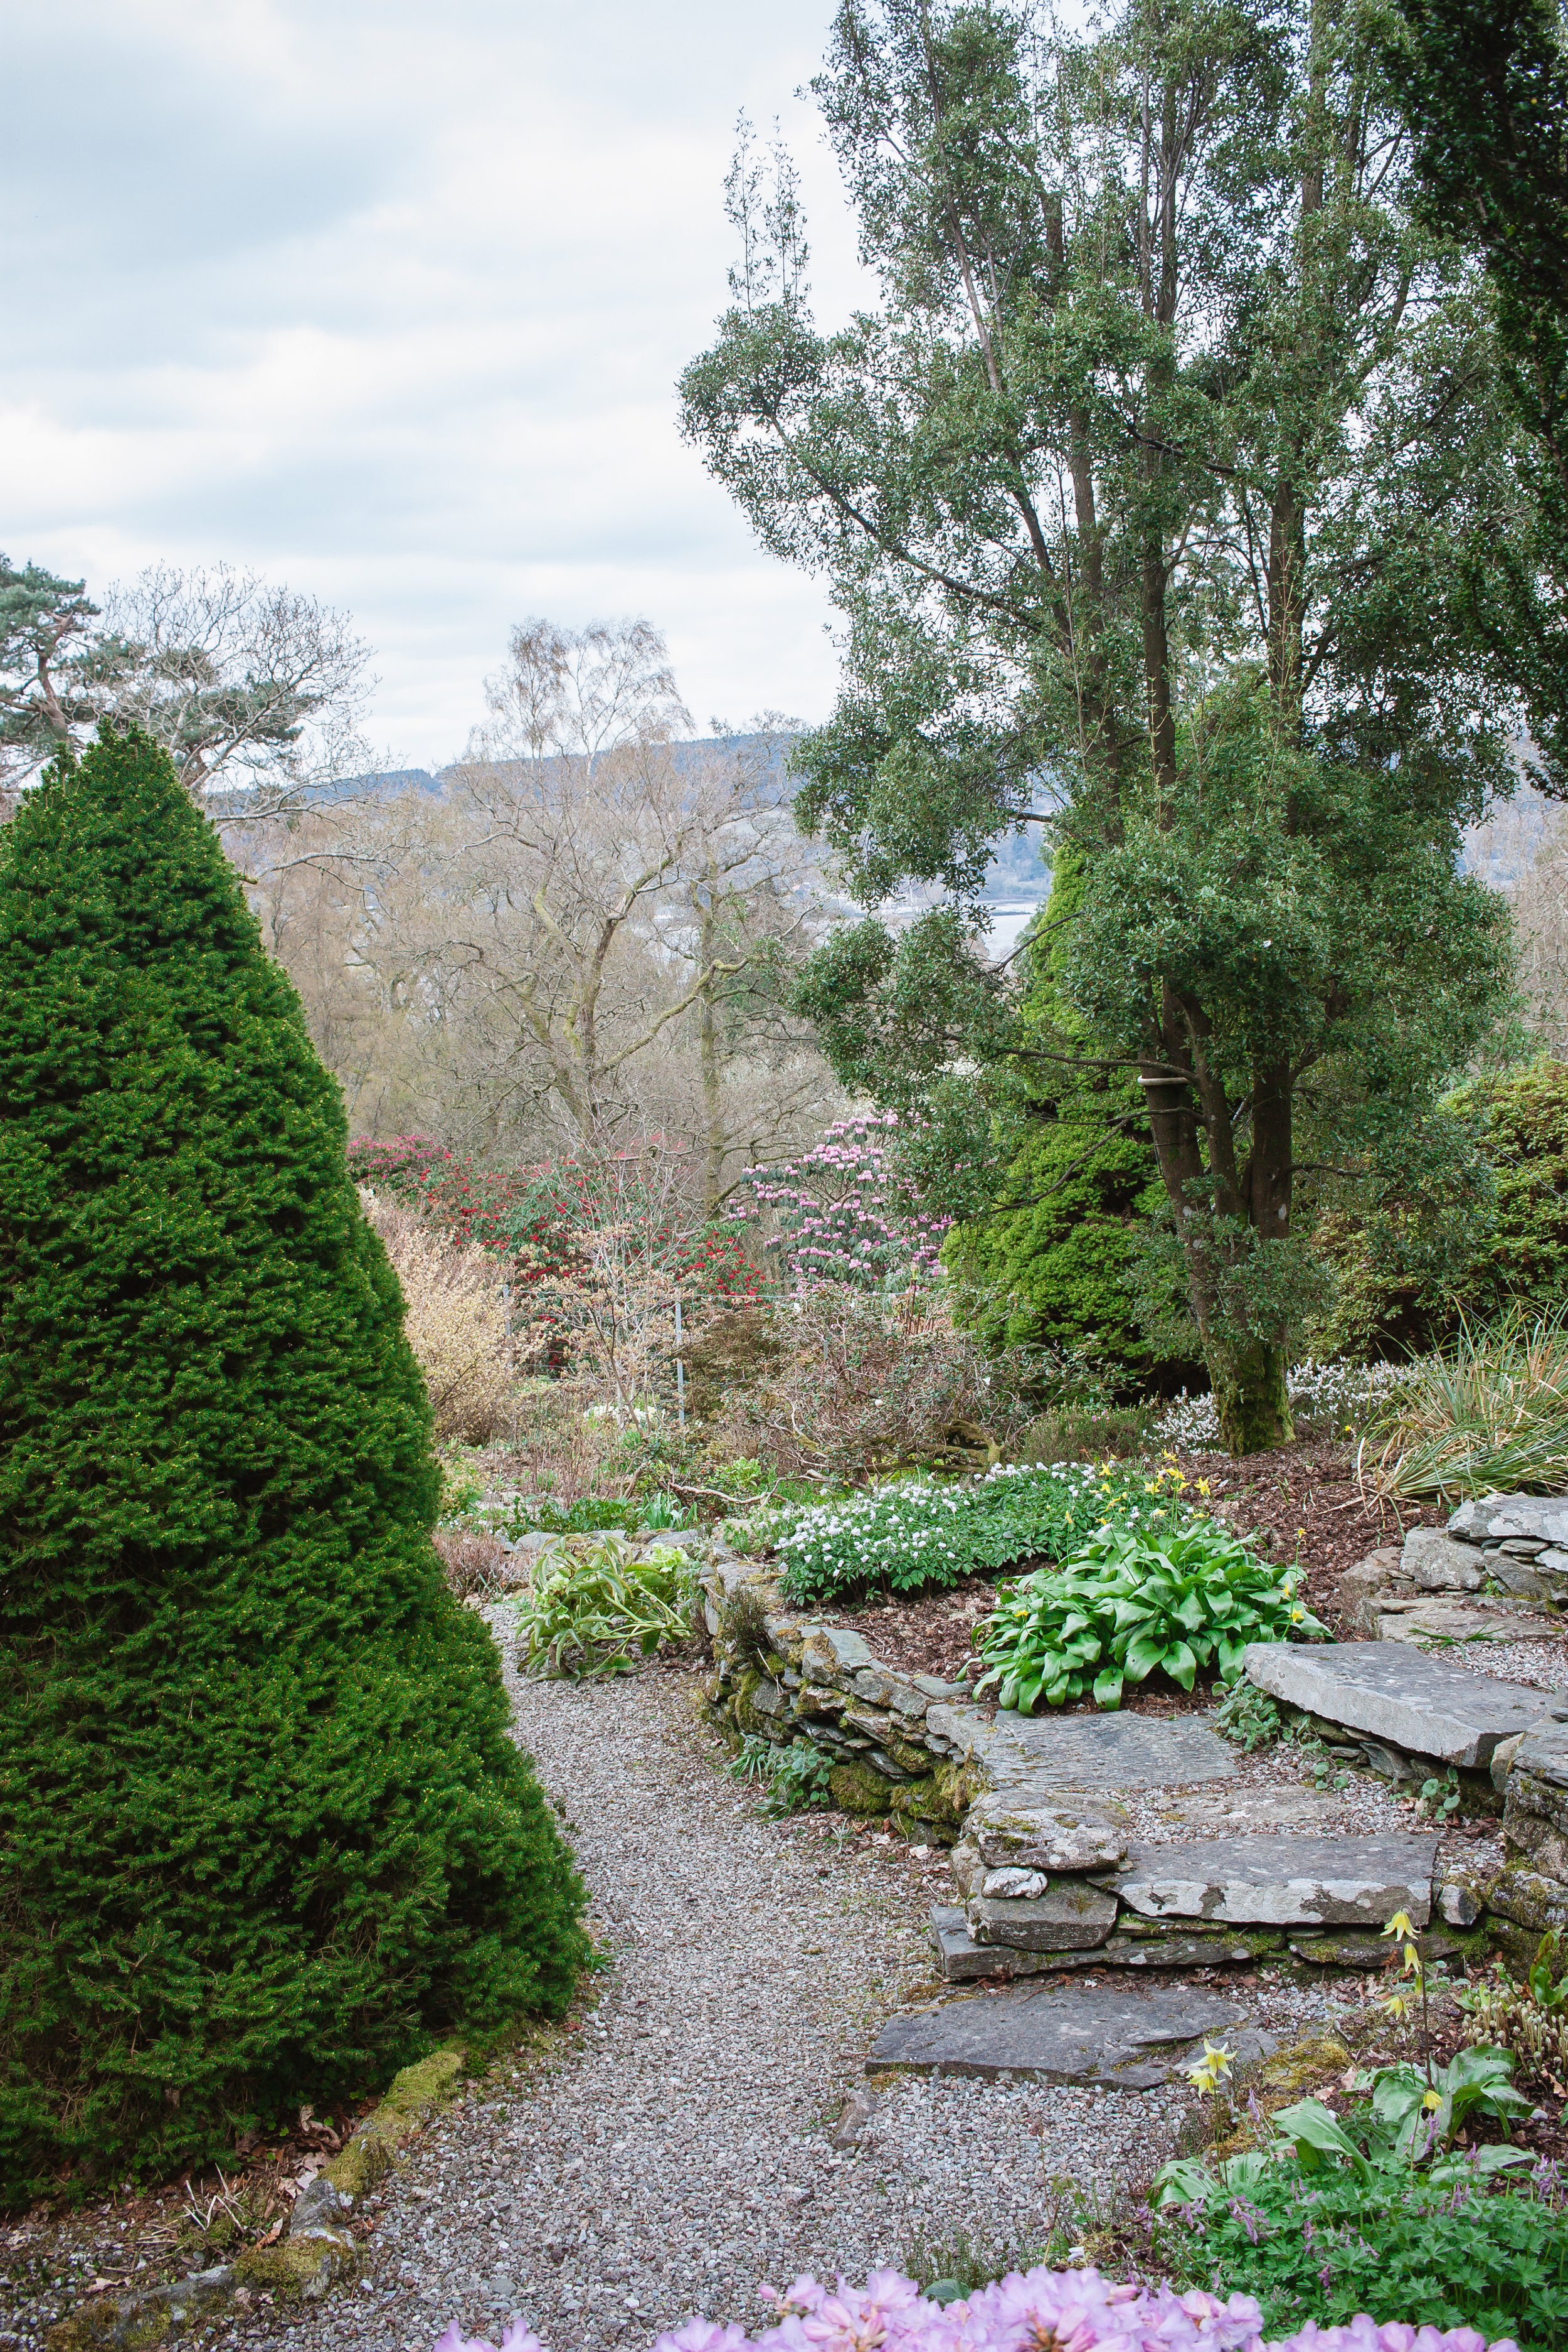 The rock garden. Consisting of rocky paths up the side of the hill, it is full of beautiful plants and blooms and at the top, one can enjoy a stunning view of the glen and across the Loch.